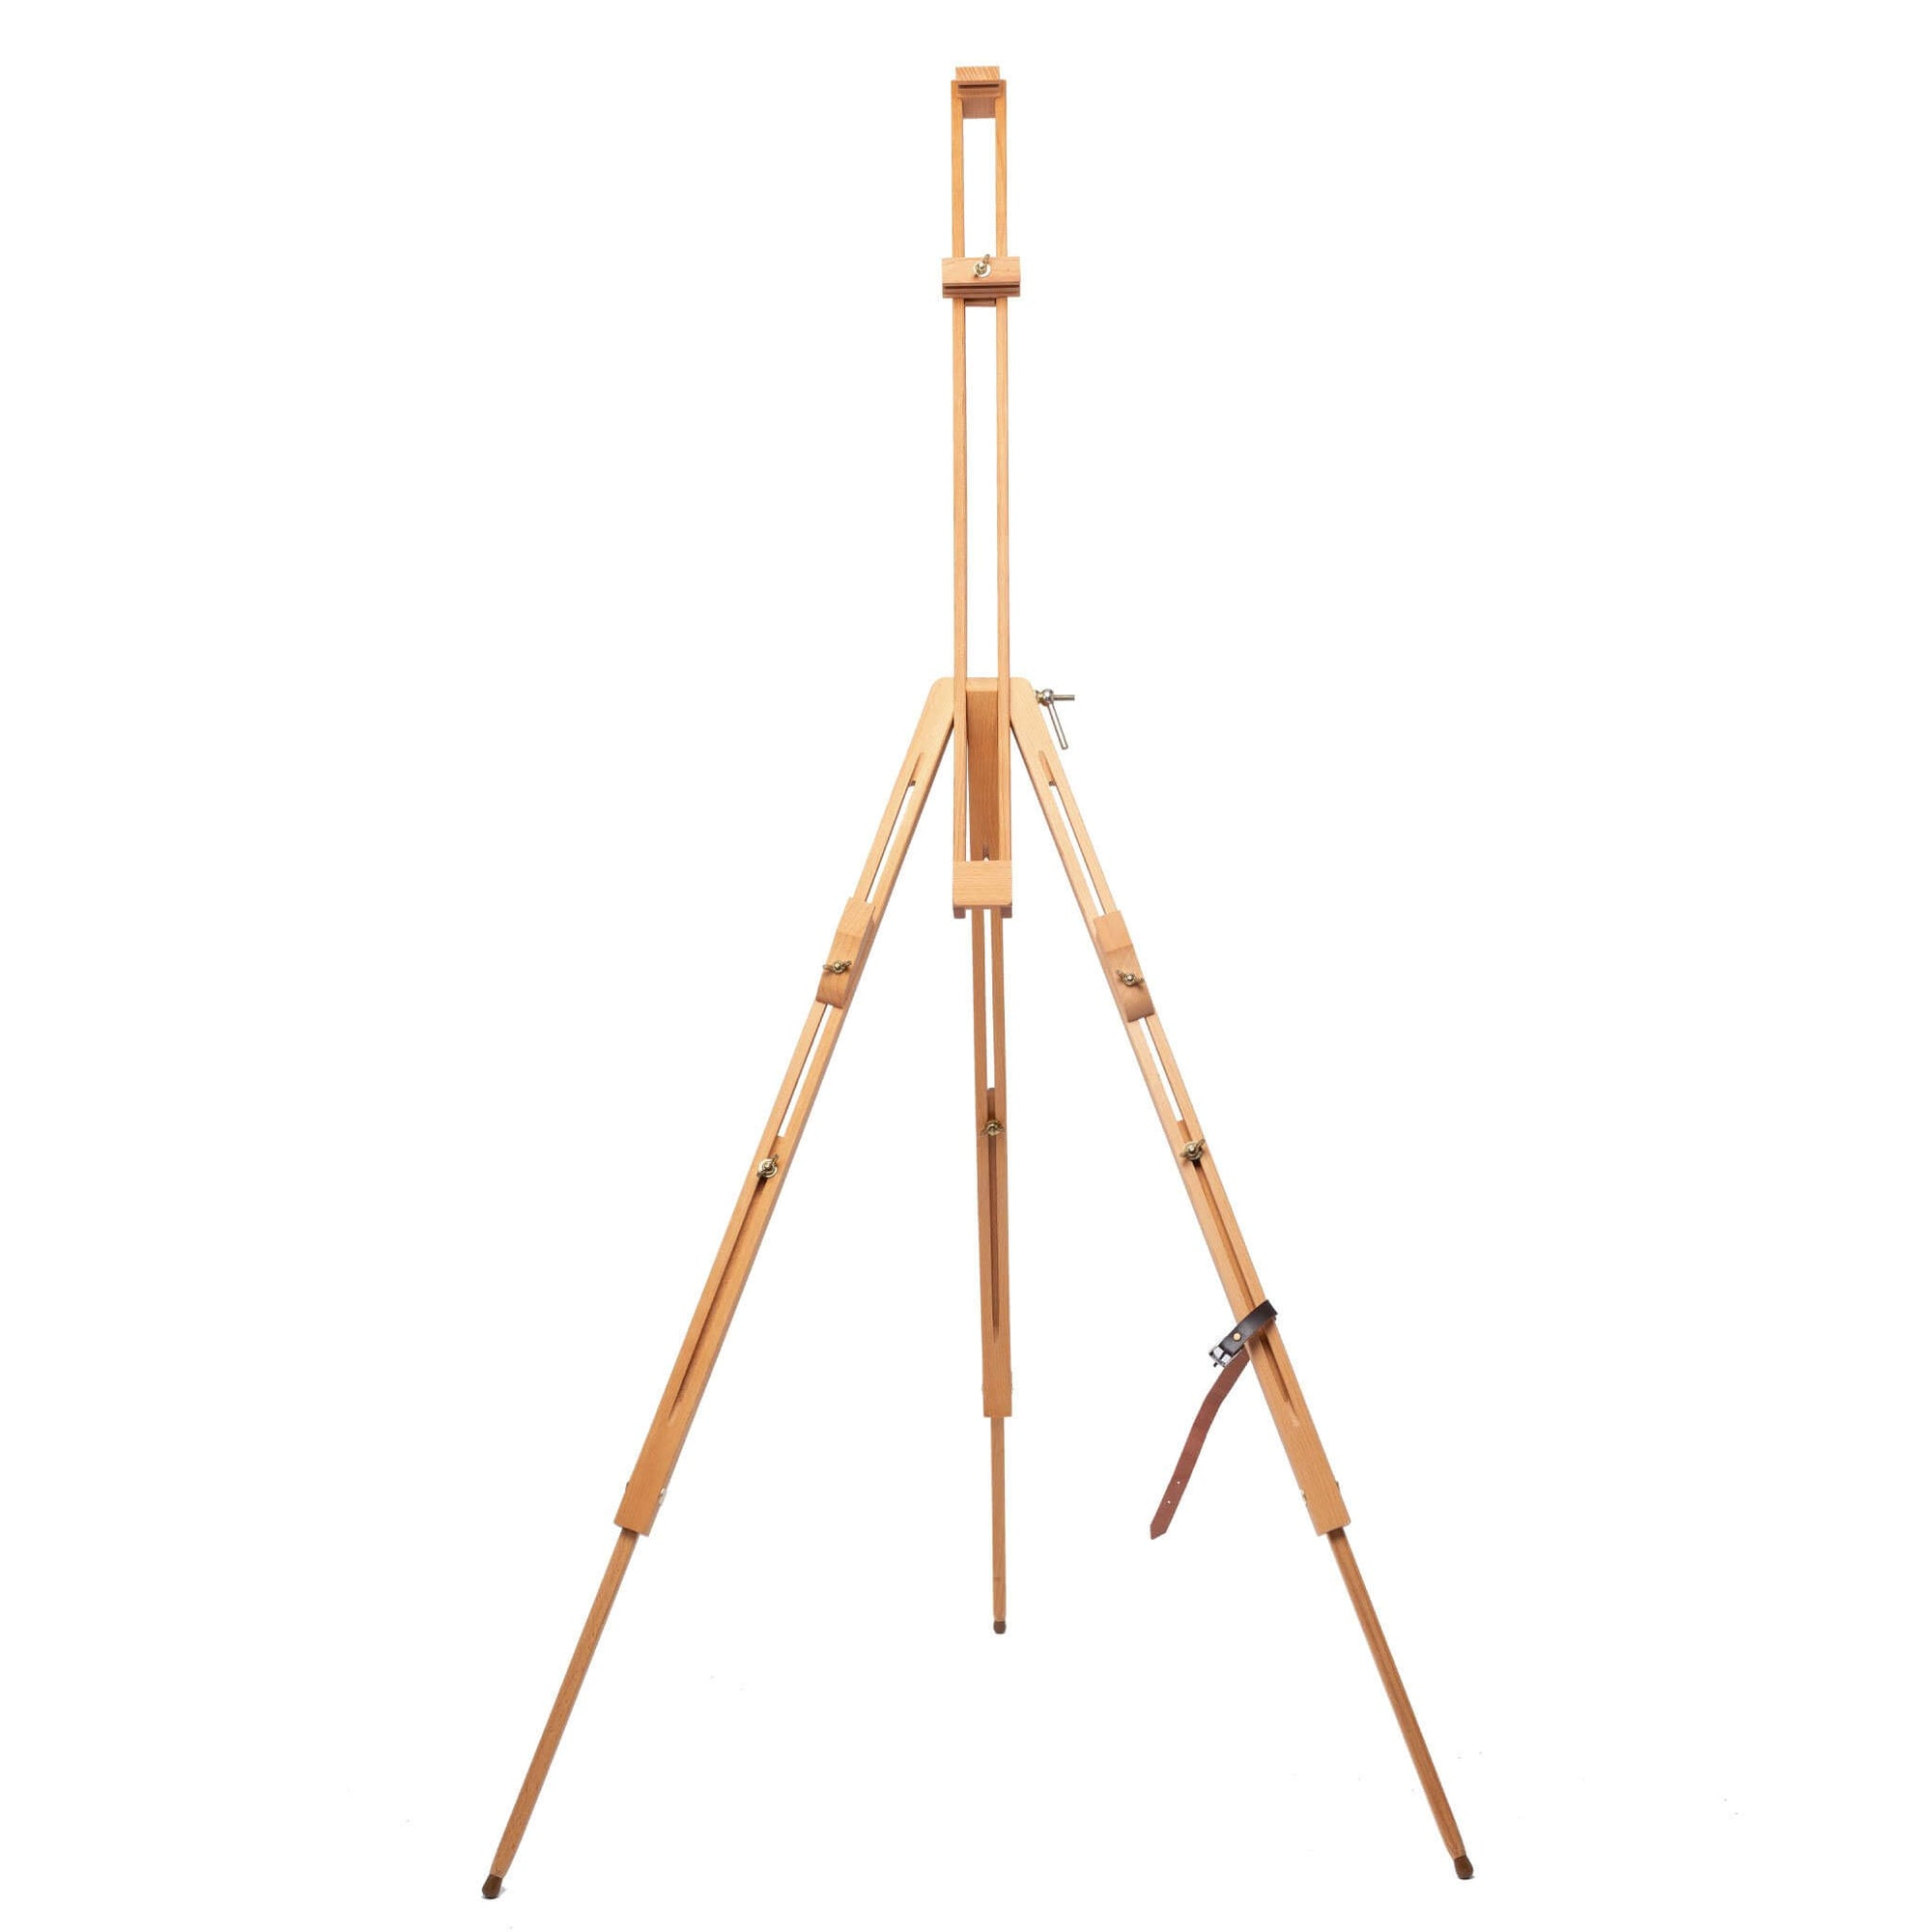 ARTdiscount Cannock/Dart Portable Field/Display Easel